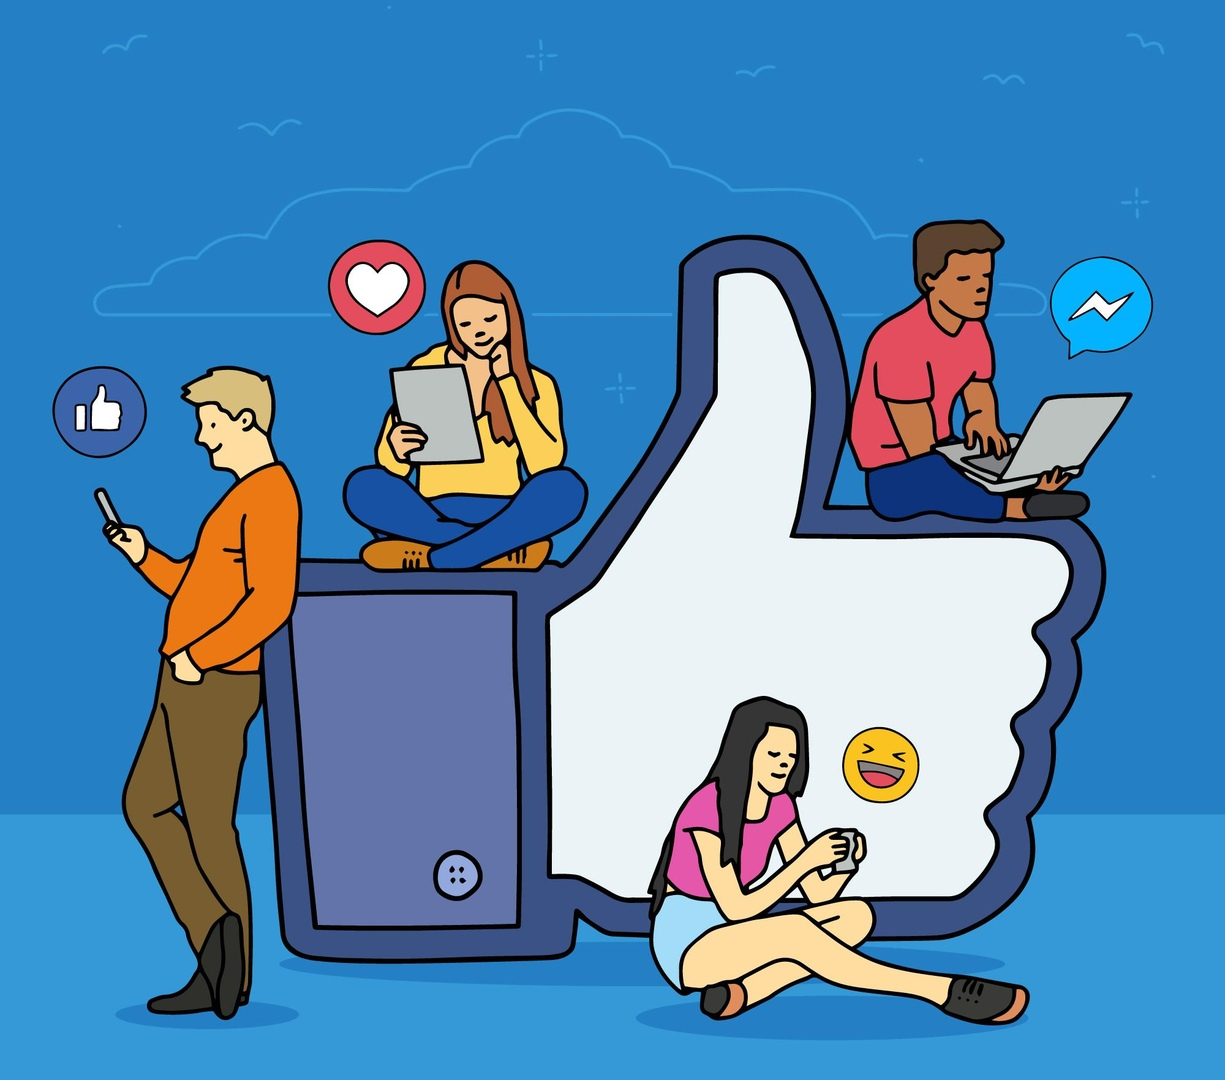 How does social media affect our lives